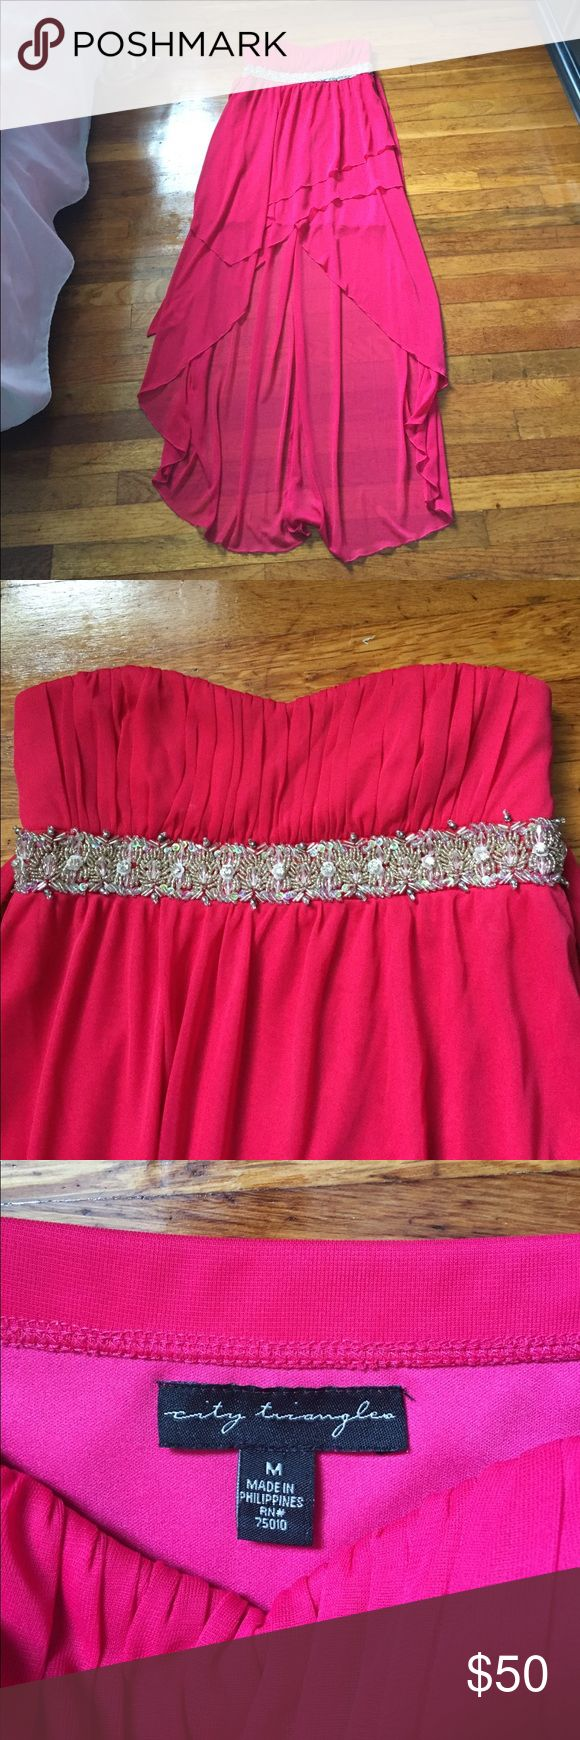 Prom/Formal dress Only worn once or twice. Great condition and has been dry cleaned. High/low style. Strapless and ties around in the back. Ask questions! Price is negotiable, so make an offer! Sherri Hill Dresses Prom